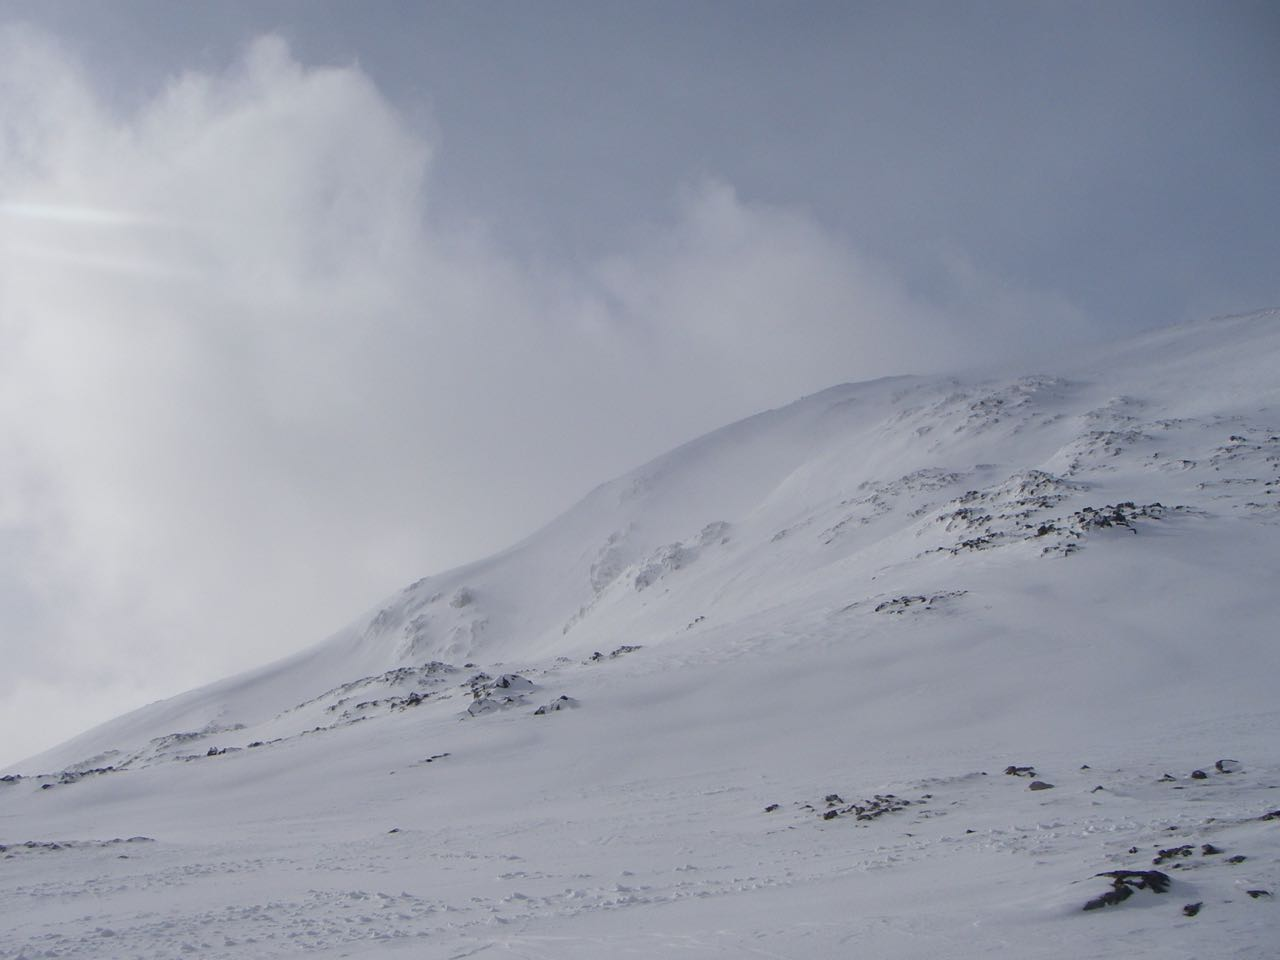 The East ridge of Meall a Bhuiridh with the steeper ski runs on its North flank